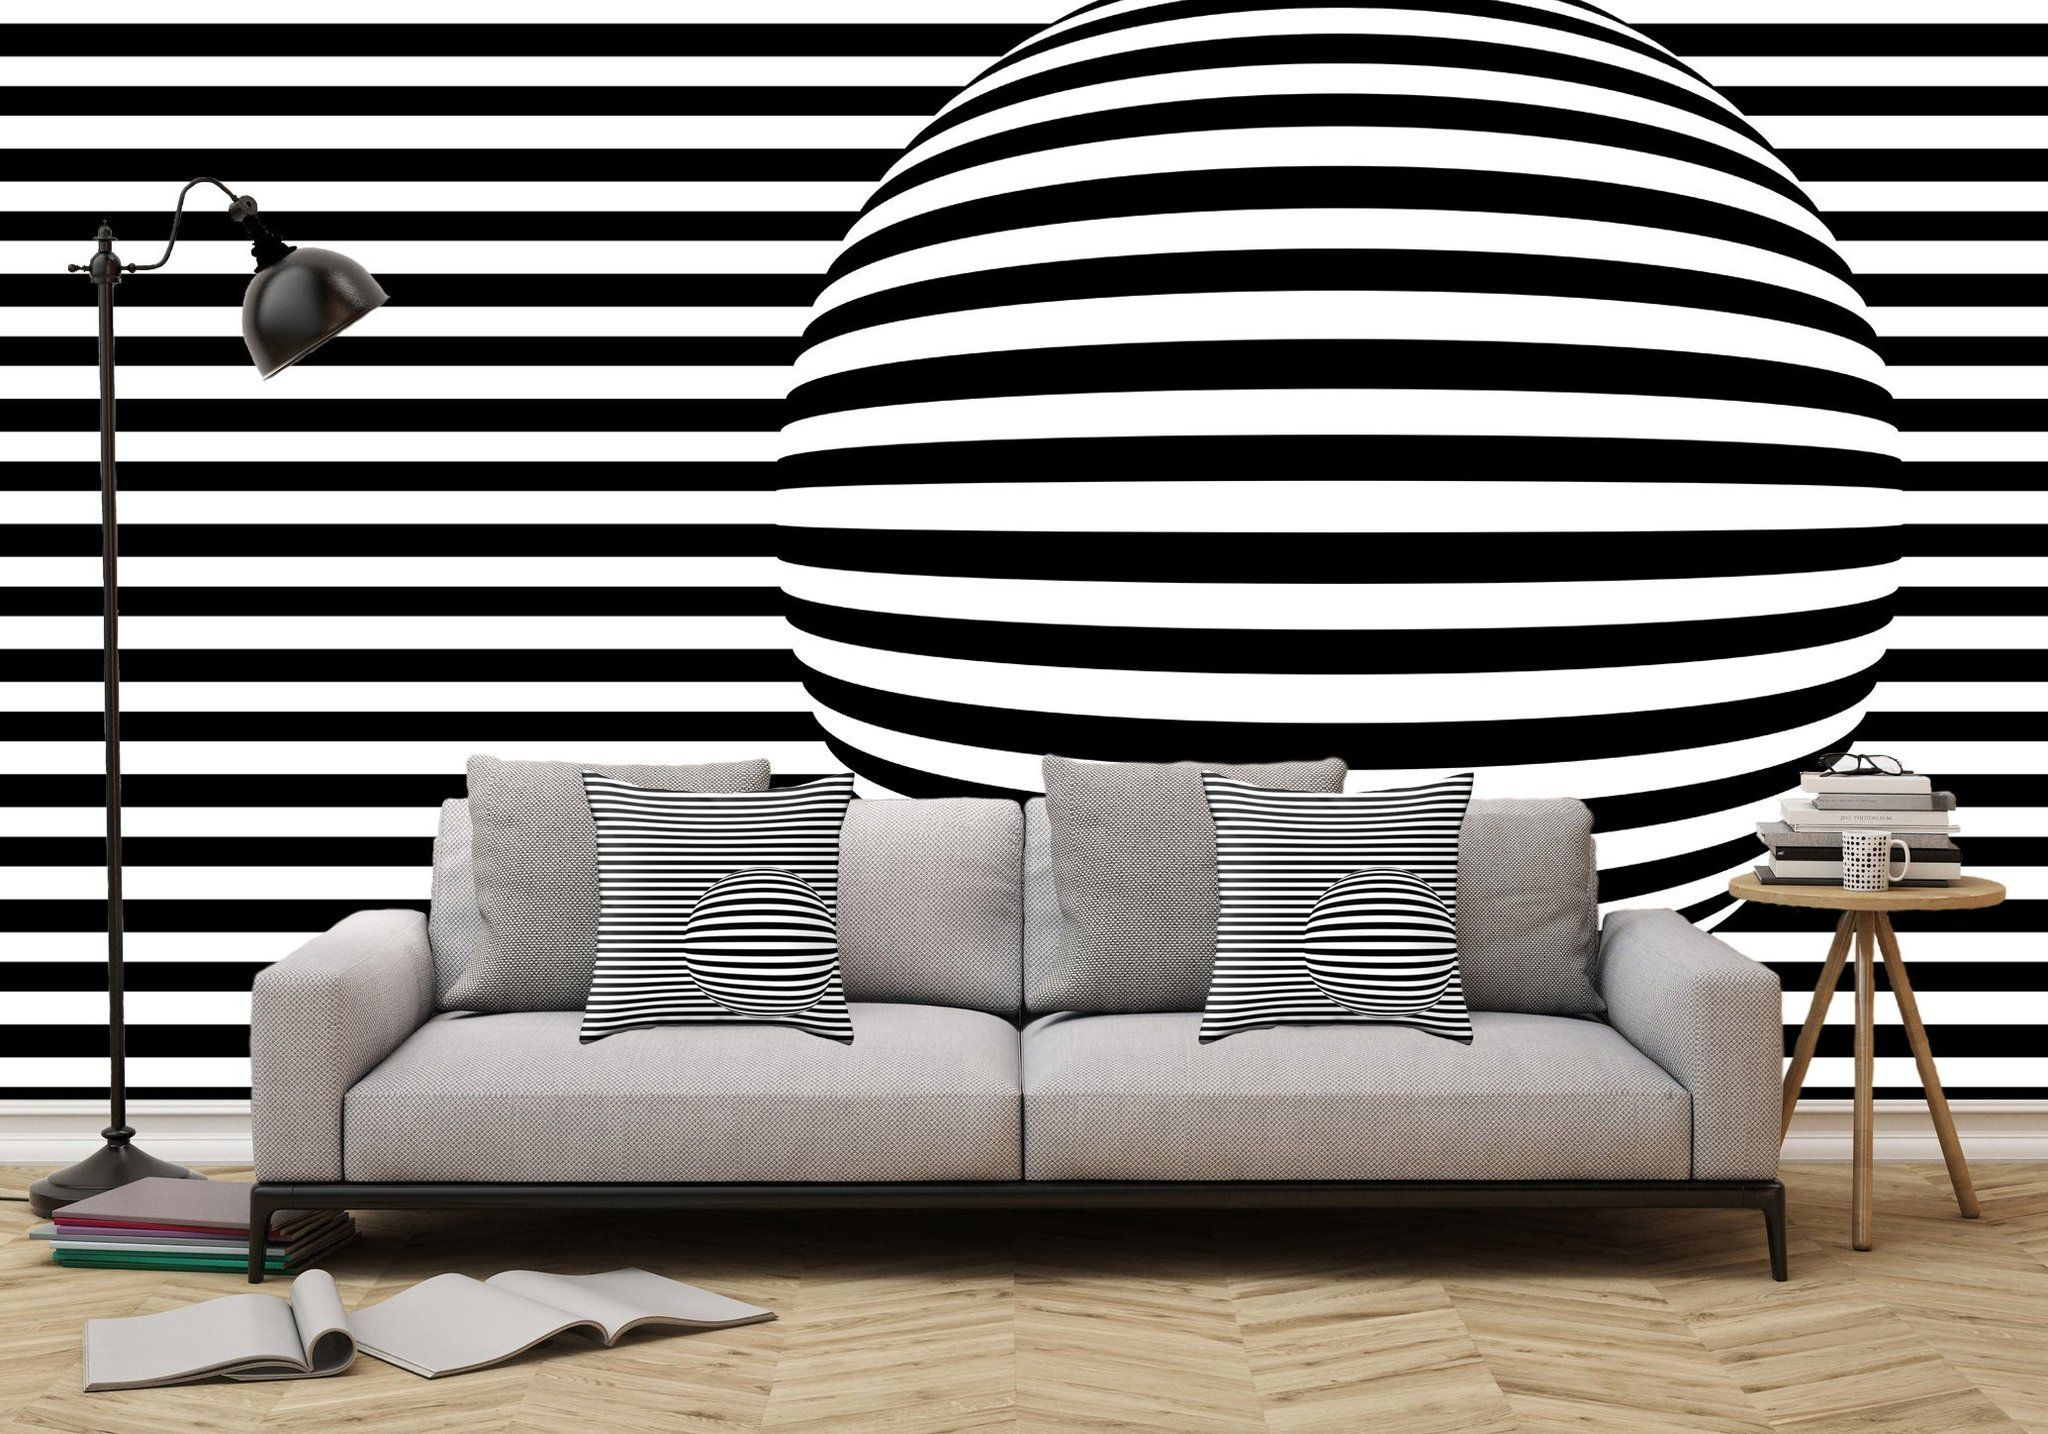 Removable Wall Mural Black And White Stripes And Sphere Adhesive Wallpaper Removable Wallpaper Wall Sticker Full Size Wall Mural Wall Wallpaper Removable Wall Murals Wall Murals